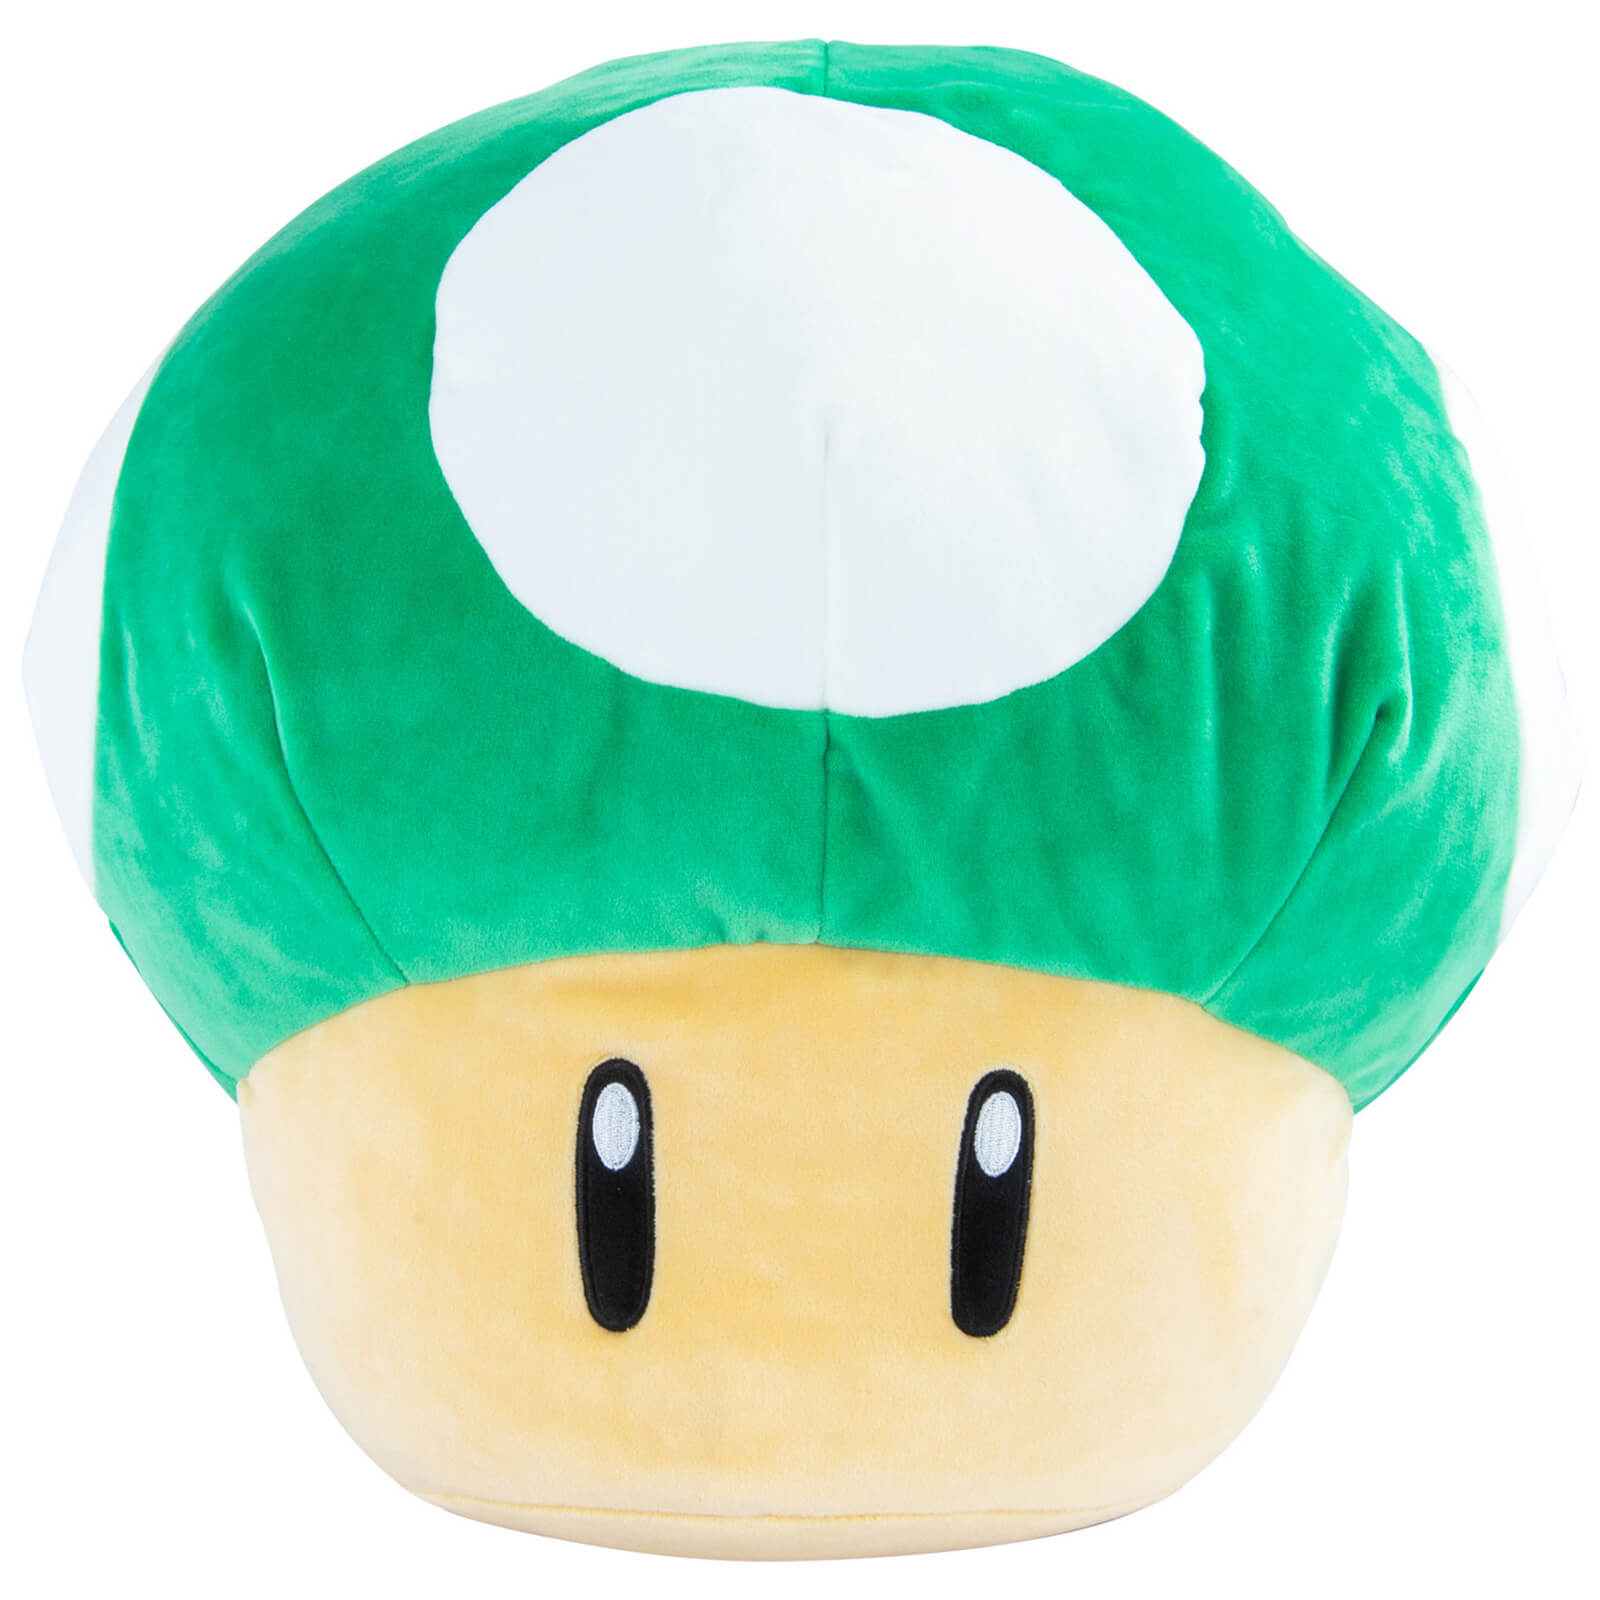 Image of Mario Kart Nintendo 1Up Mushroom Mega Plush Toy